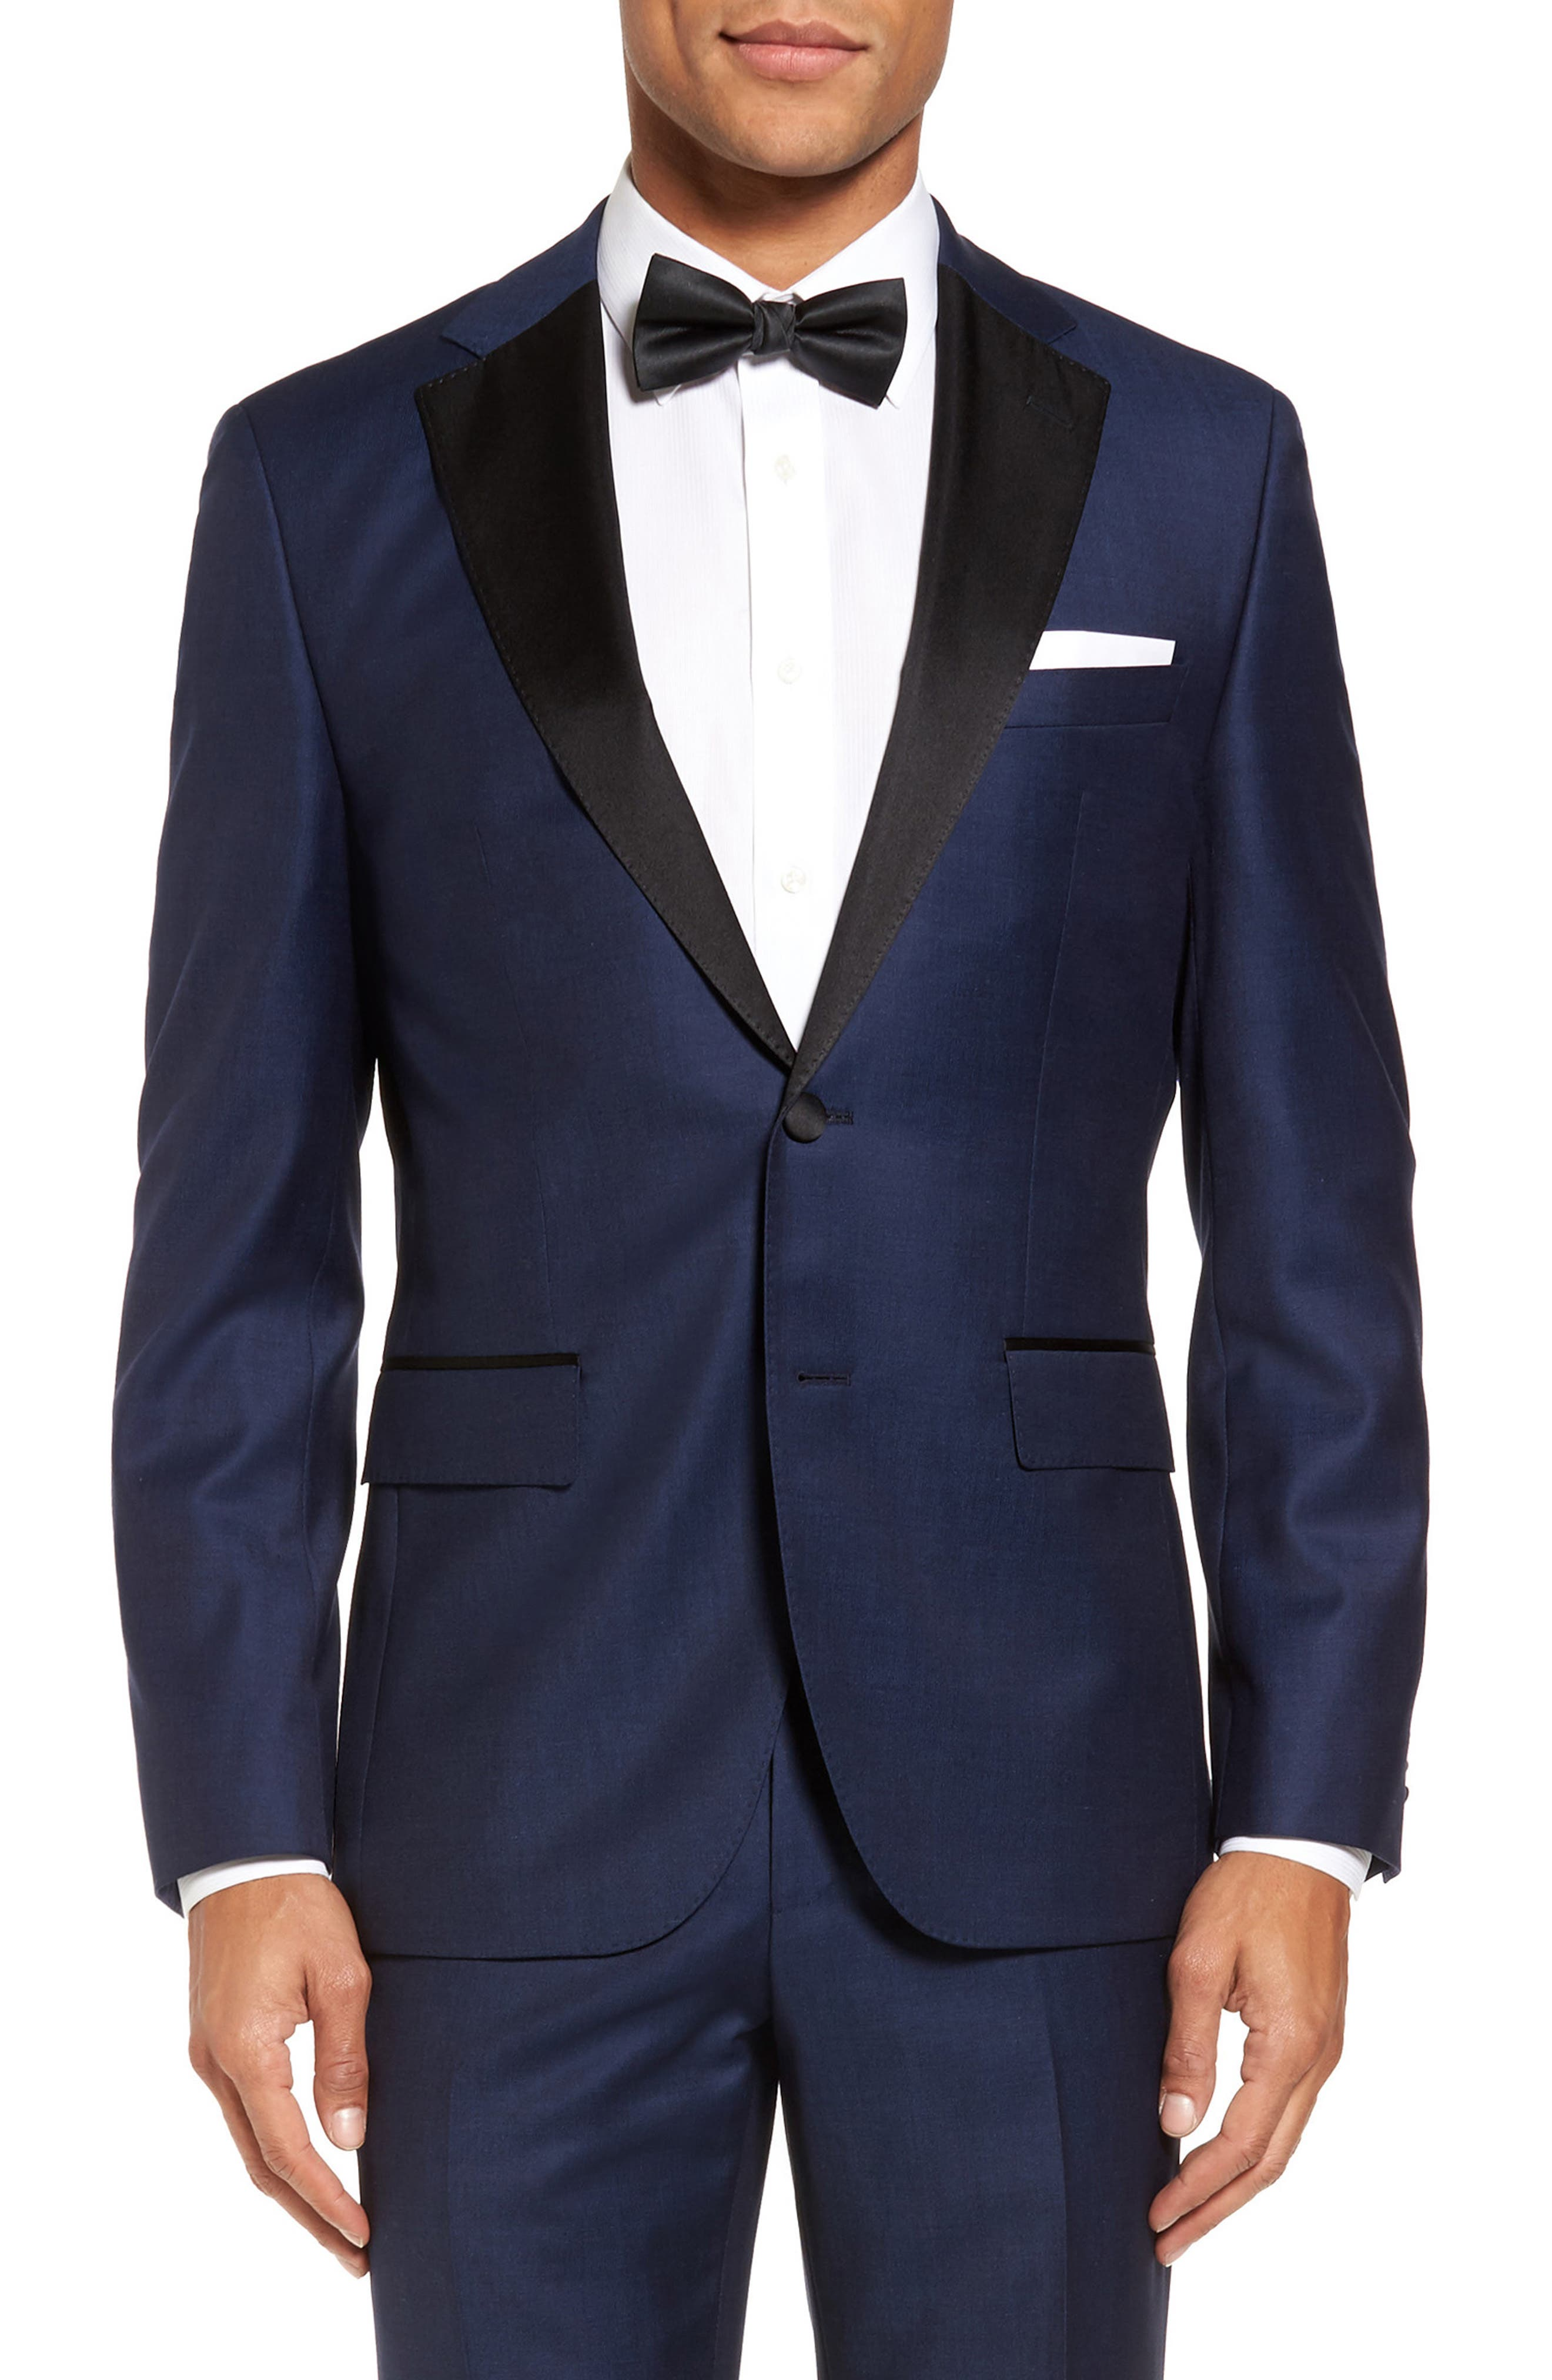 Jelvan/Livan Trim Fit Wool & Silk Tuxedo,                             Alternate thumbnail 5, color,                             420